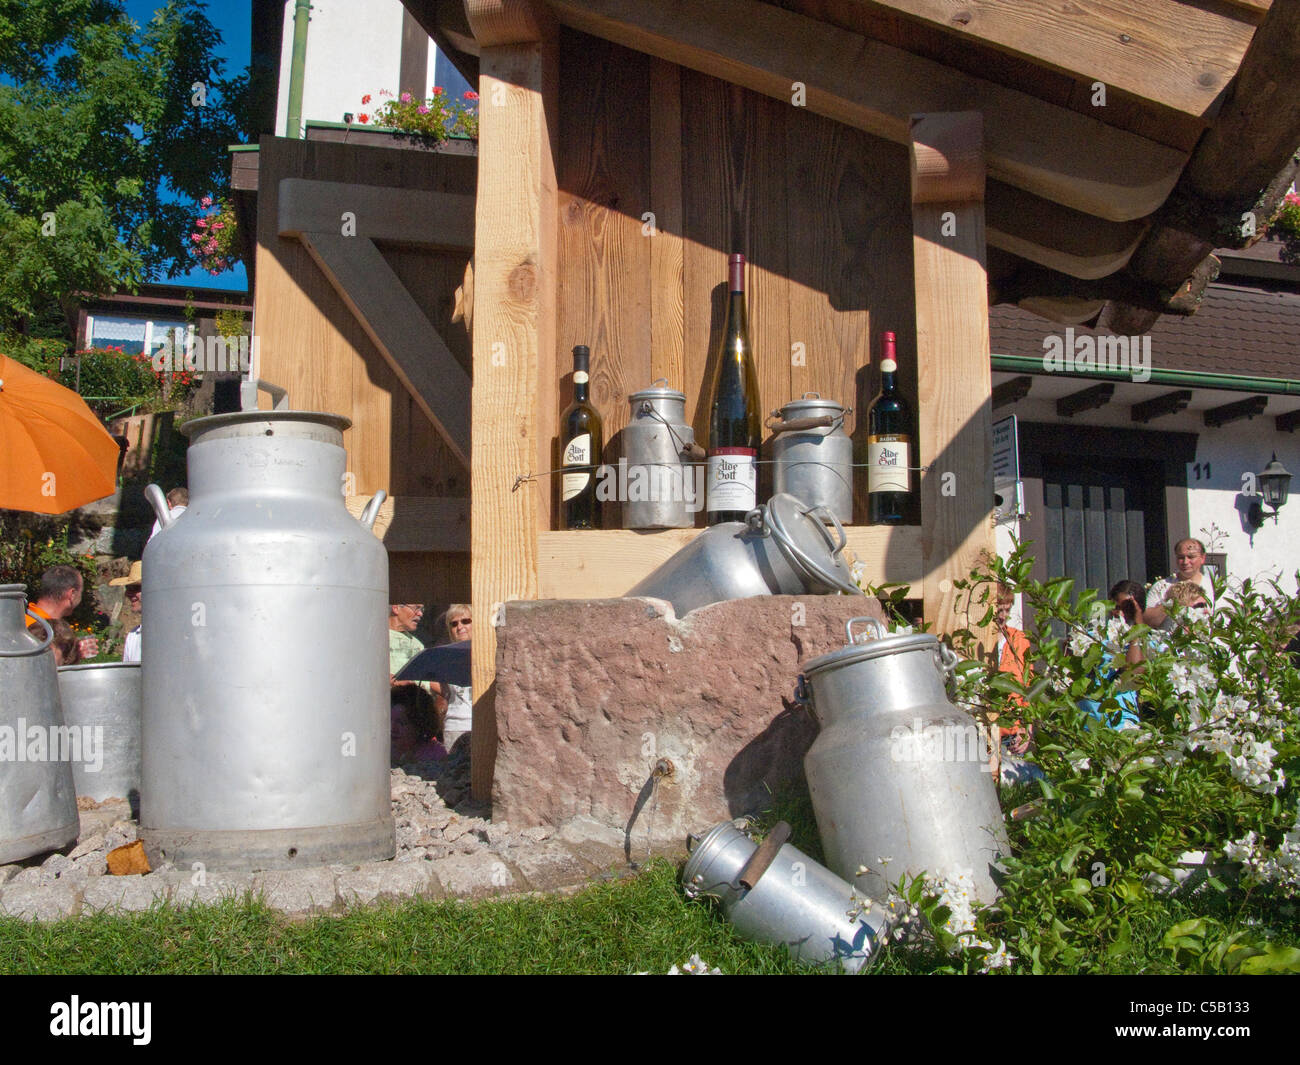 Alte Milchannen als Dekoration im Garten Sasbachwalden Schwarzwald, Old milk cans as decoration in a garden, Black - Stock Image